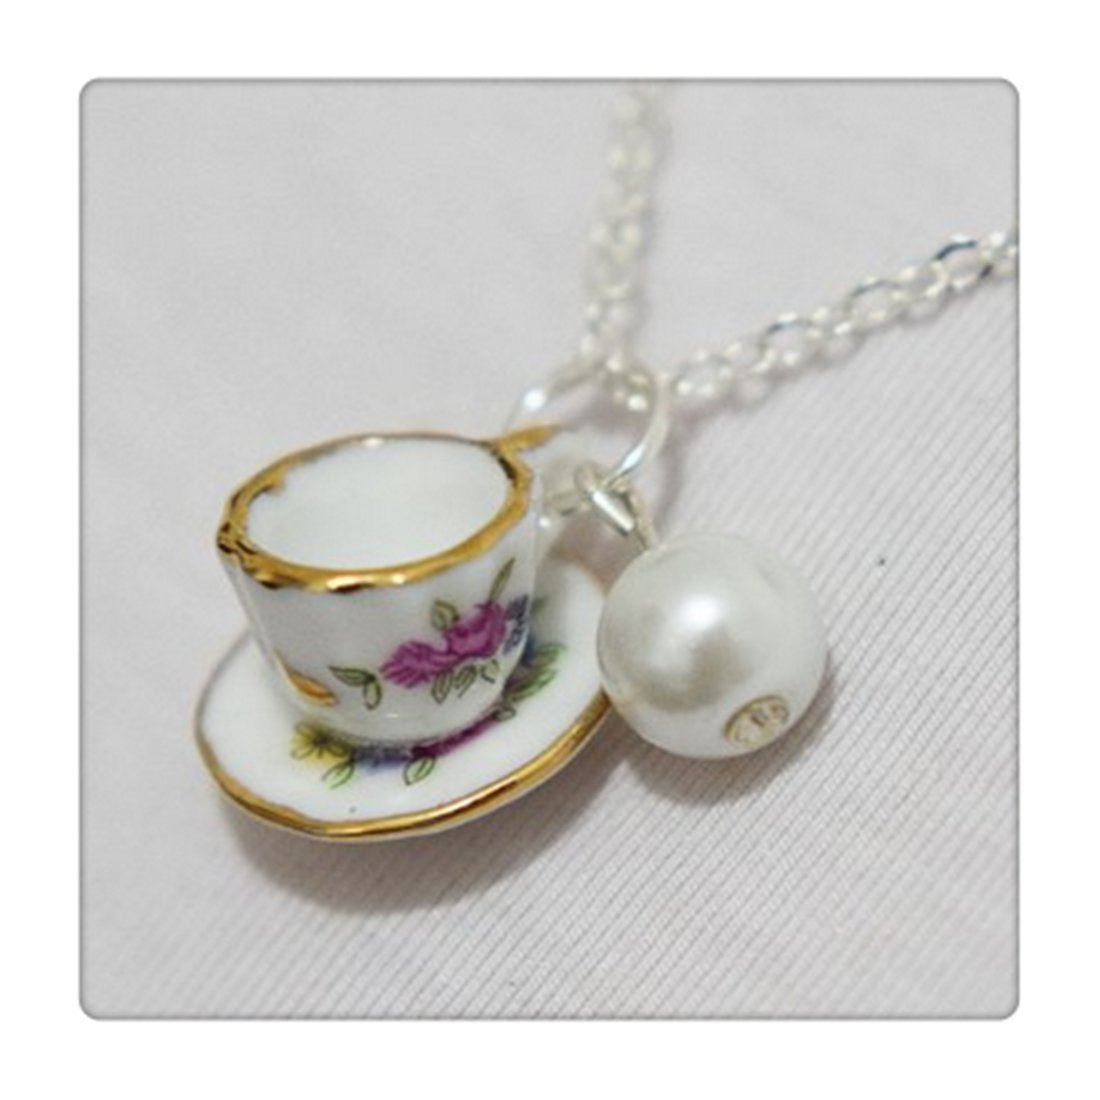 Tea Cup Necklace, Pearl Necklace, Tiny Pink Tea Cup Set, Cooking Party Jewelry, Coffee Cup Necklace, Bridesmaids Jewelry